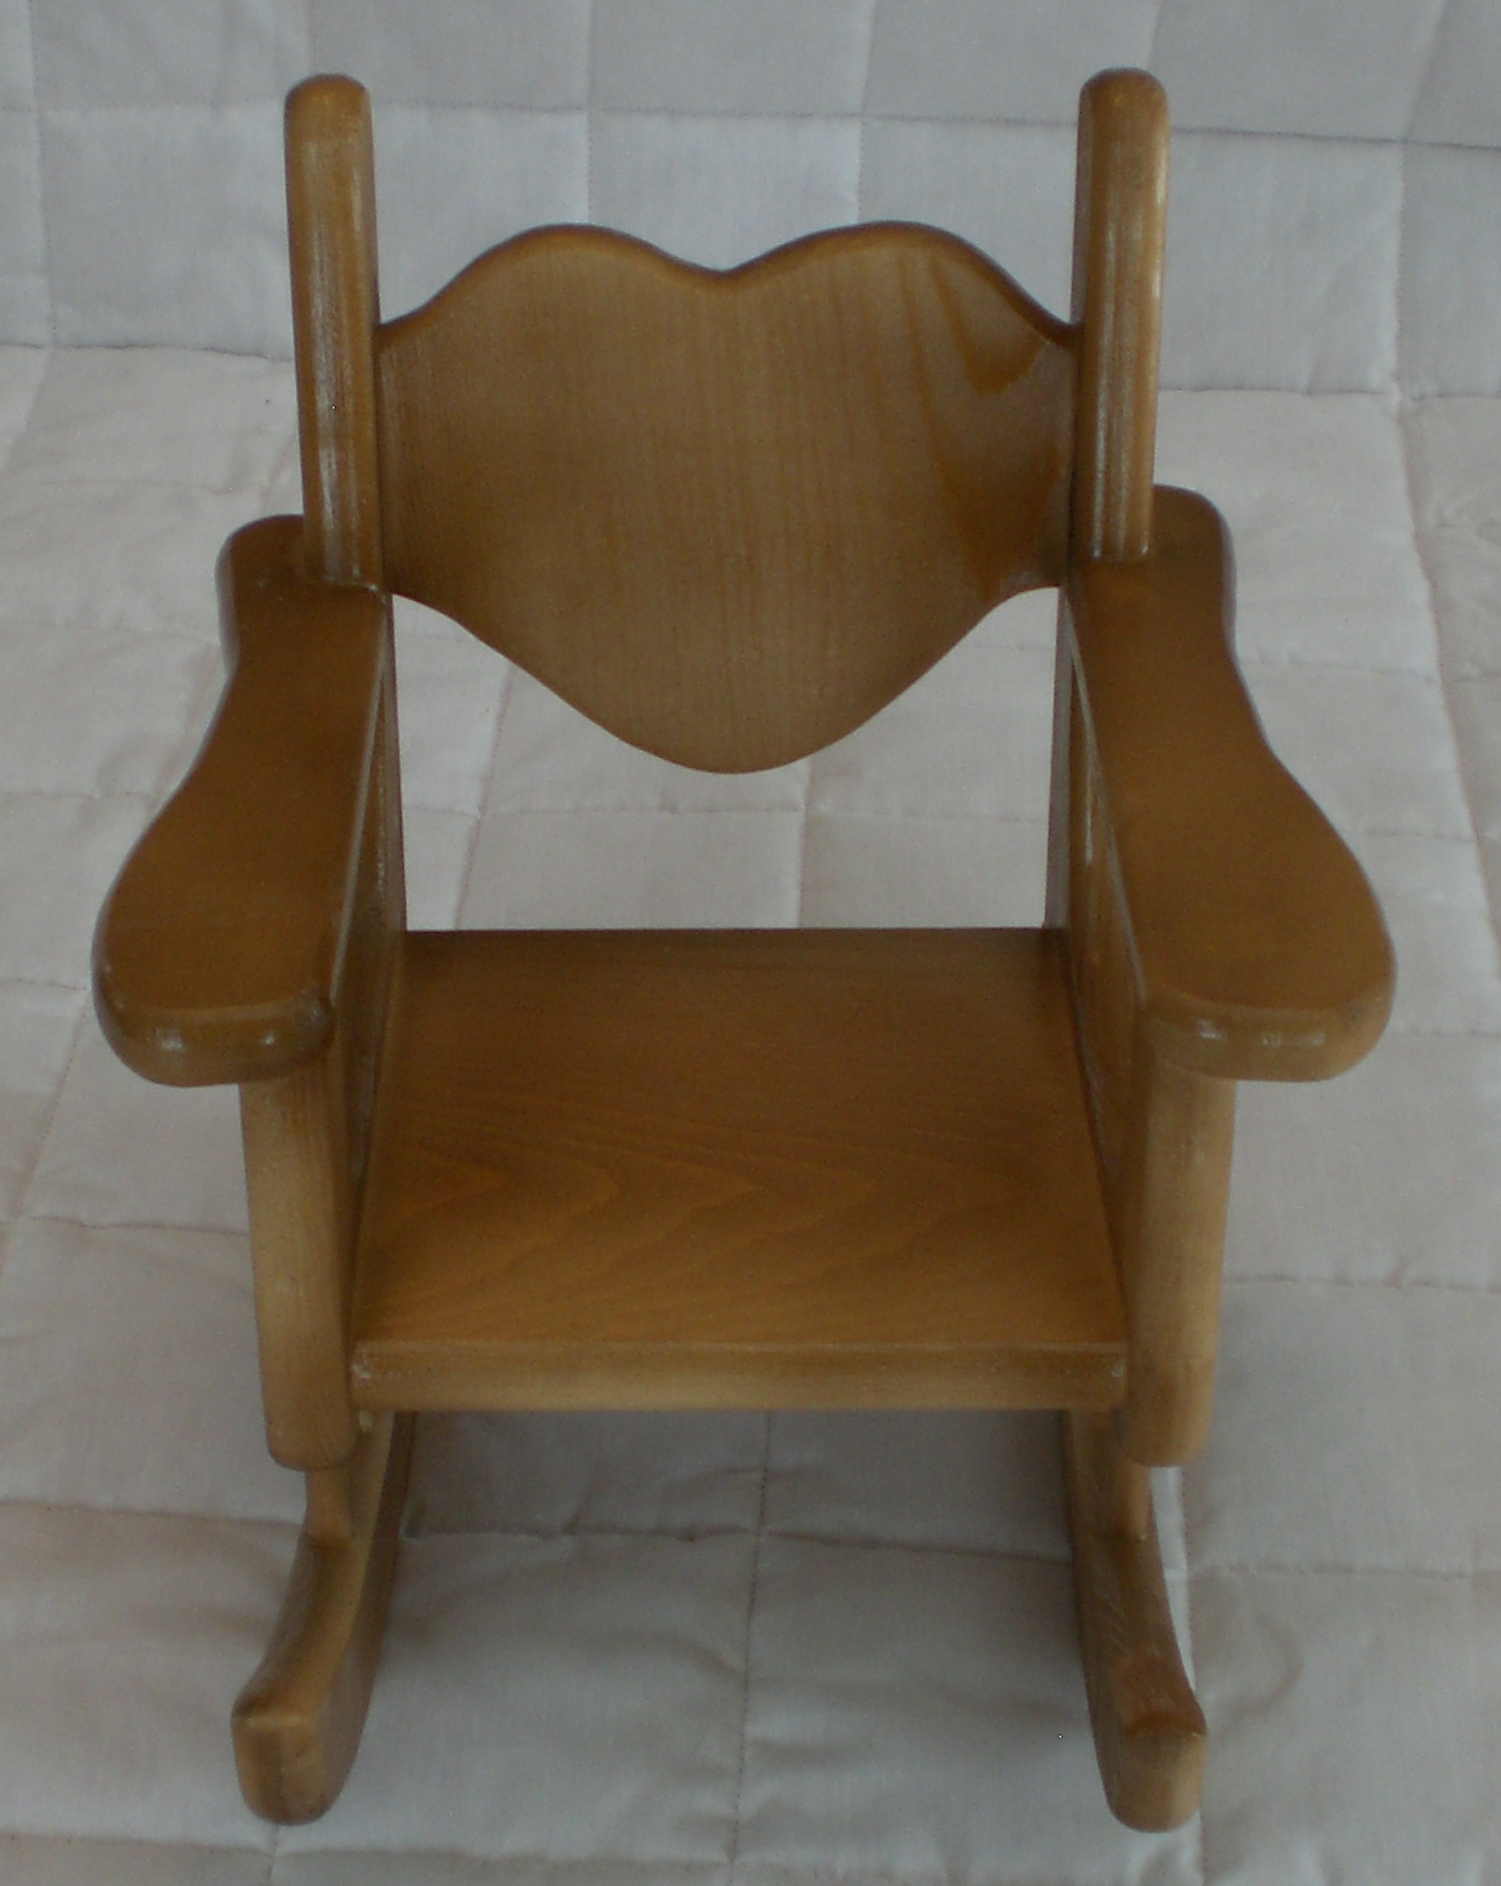 Early American Rocking Chair for American Girl size doll